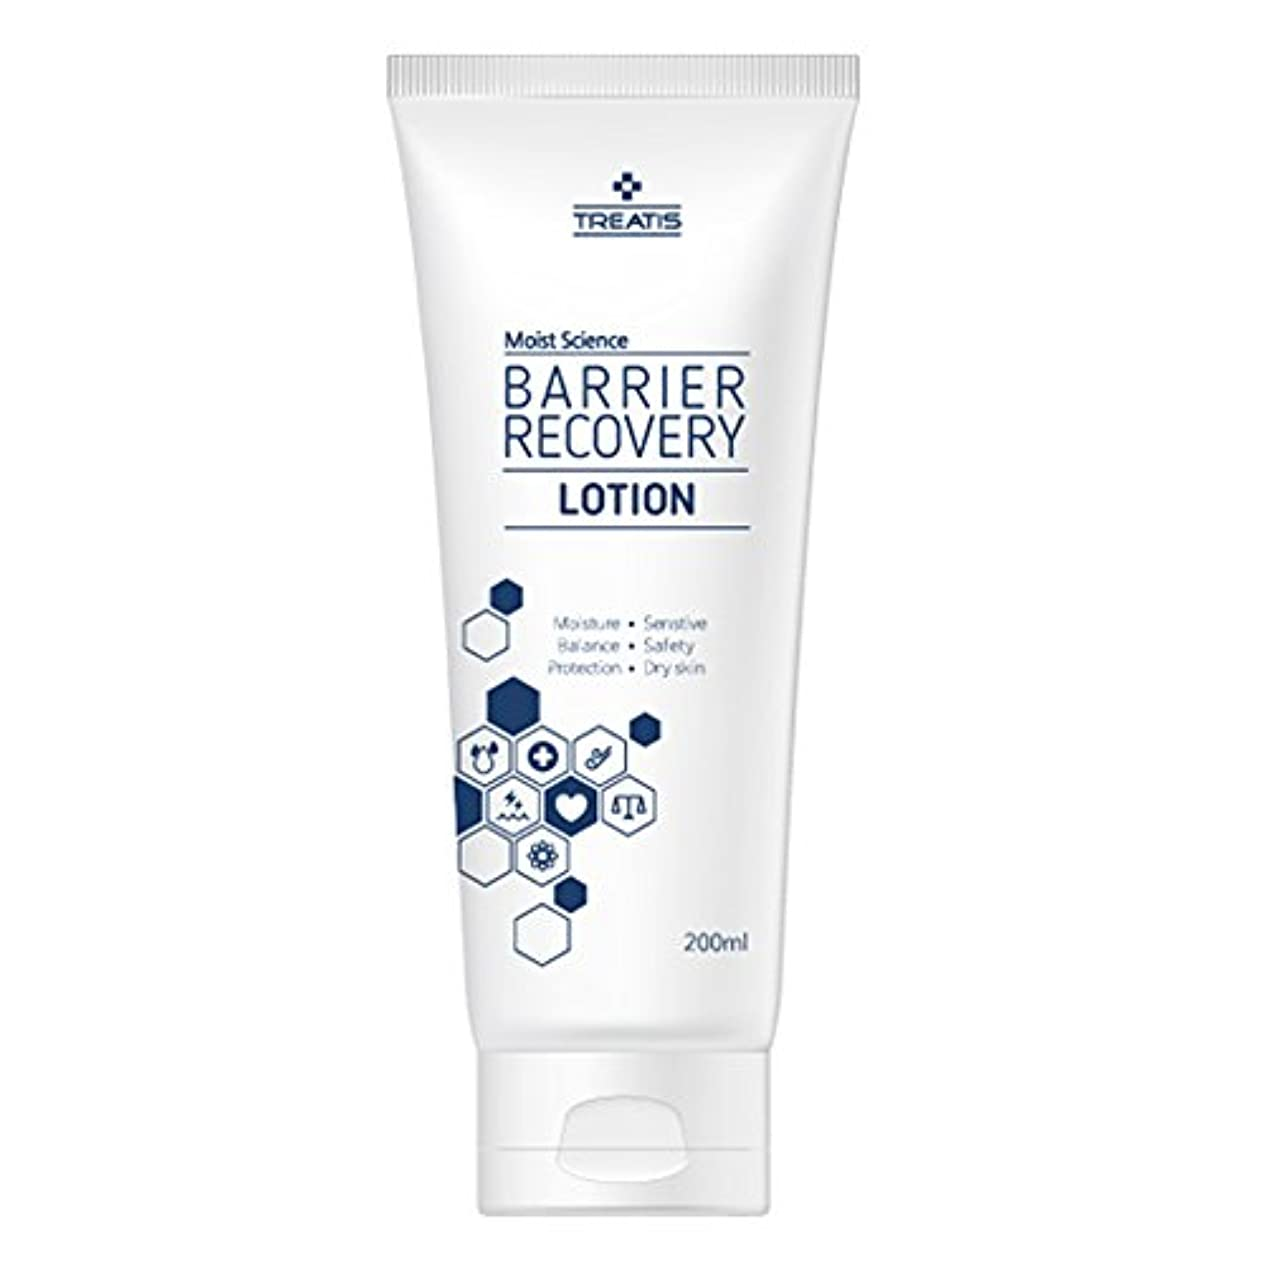 ミケランジェロ上流の顧問Treatis barrier recovery lotion 7oz (200ml)/Moisture, Senstive, Balance, Safty, Protection, Dry skin [並行輸入品]